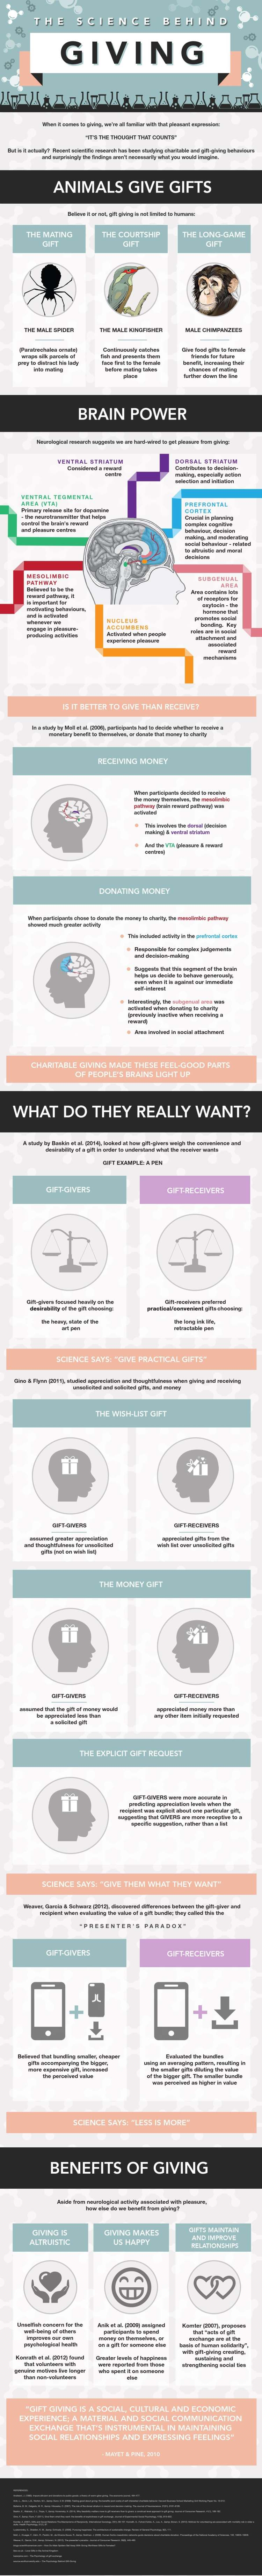 science-behind giving infographic